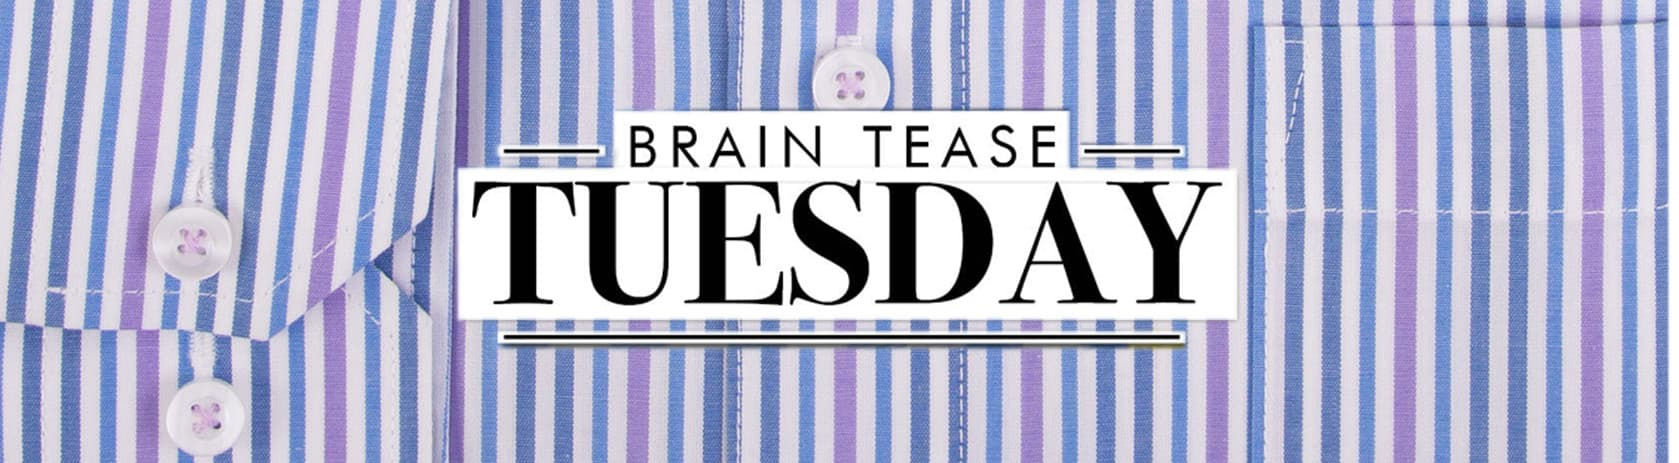 Brain Tease Tuesday Week 33